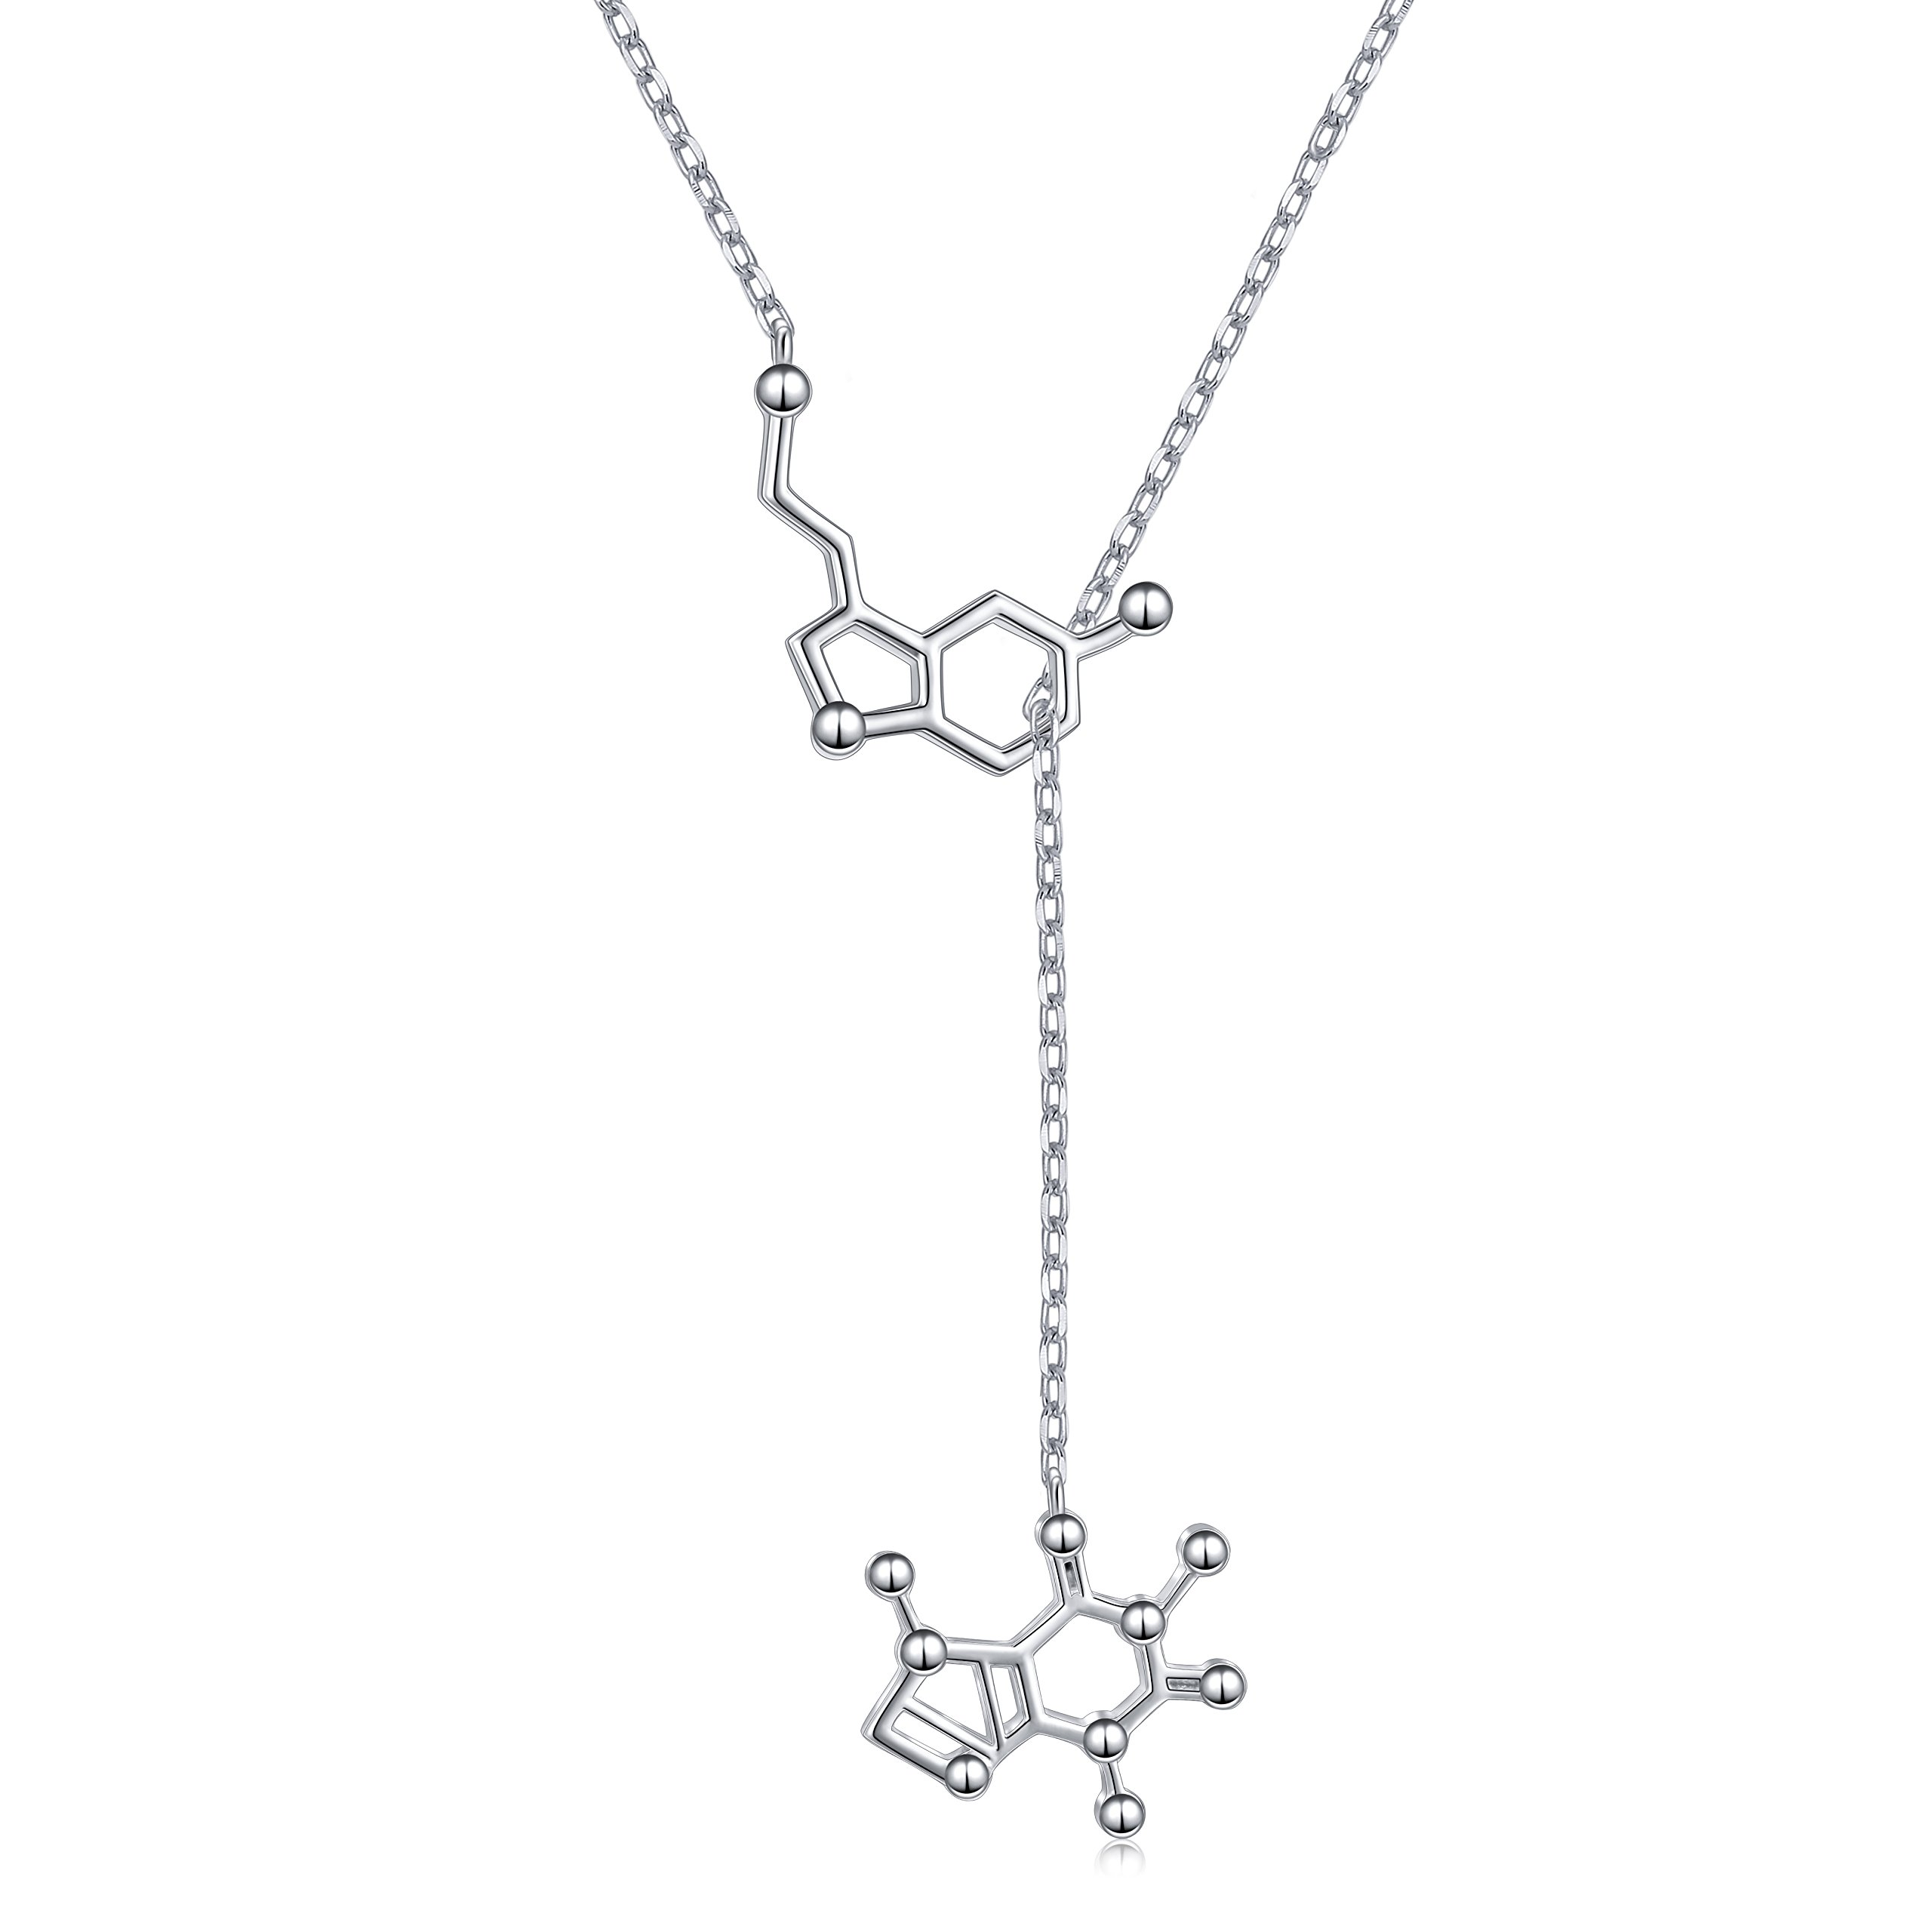 DAOSHANG Silver Molecule Serotonin and Caffeine Molecule Necklace for Science Lover and Coffee Lover